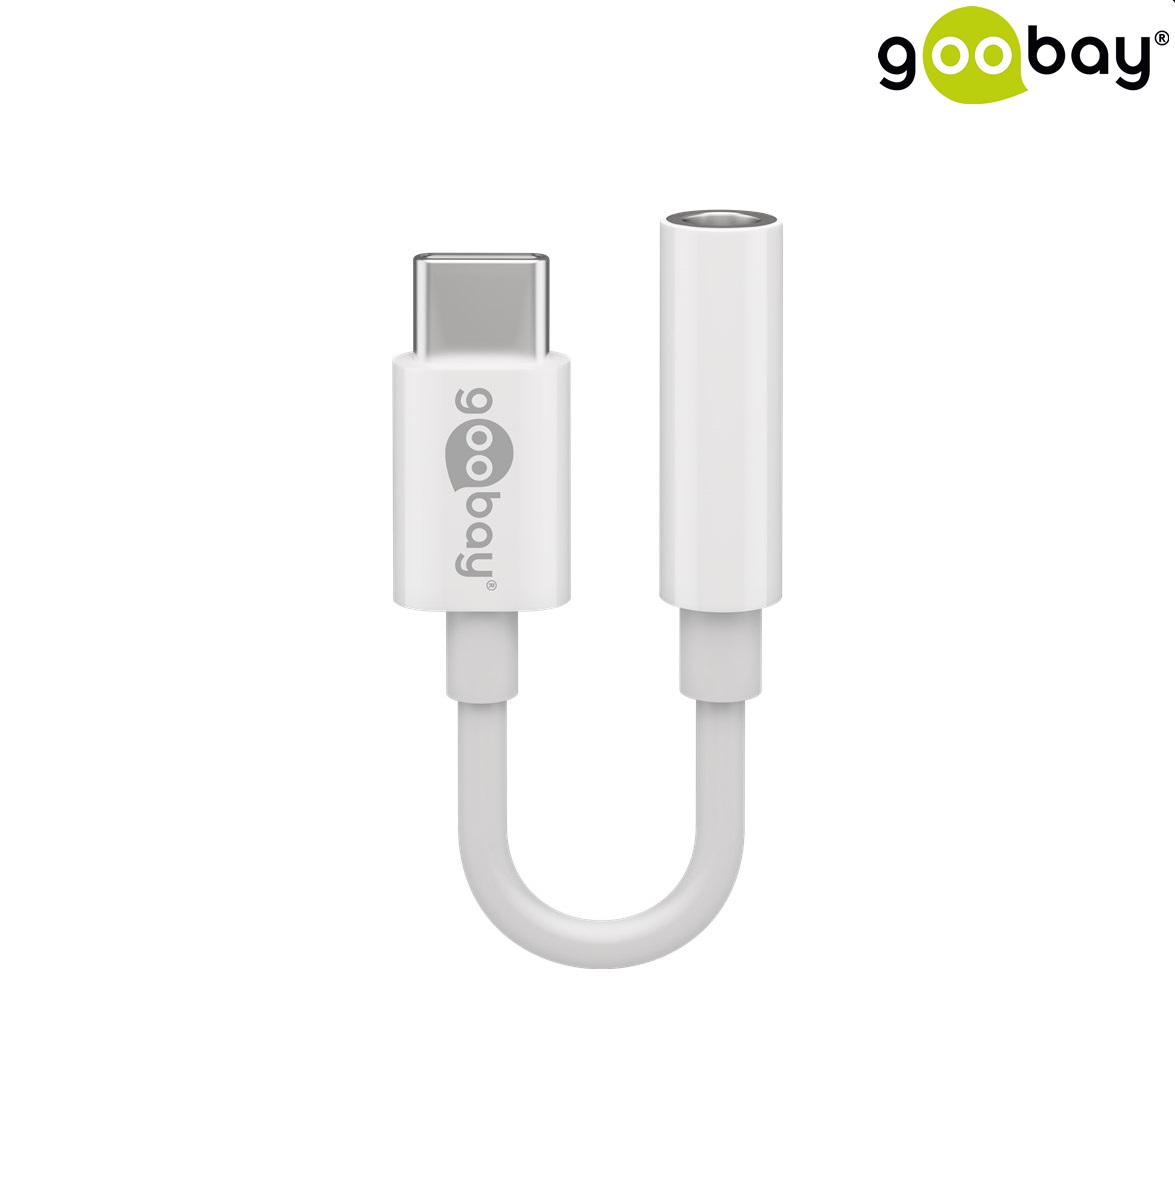 USB-C to 3.5 Audio GOOBAY 0.1м бял 55646